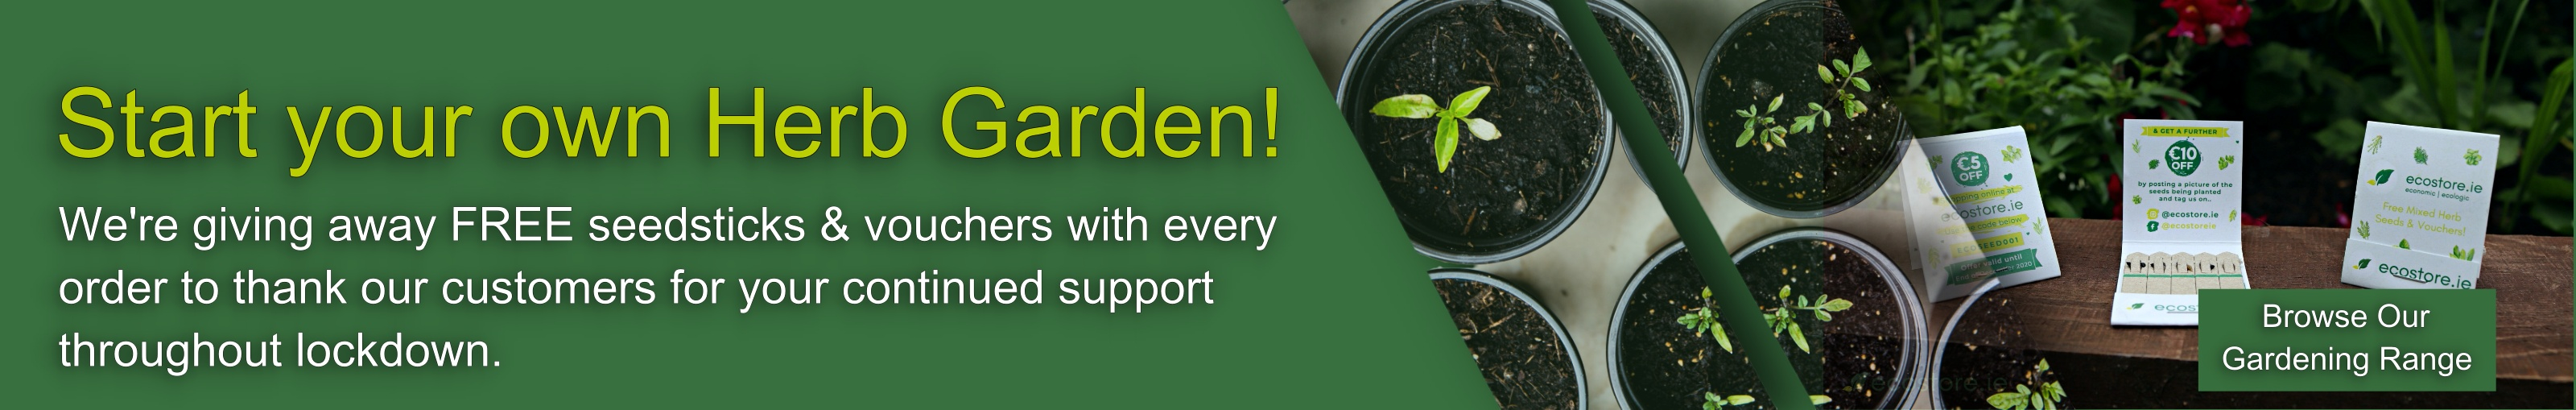 Start you own Herb Garden - Free Seedstick Giveaway